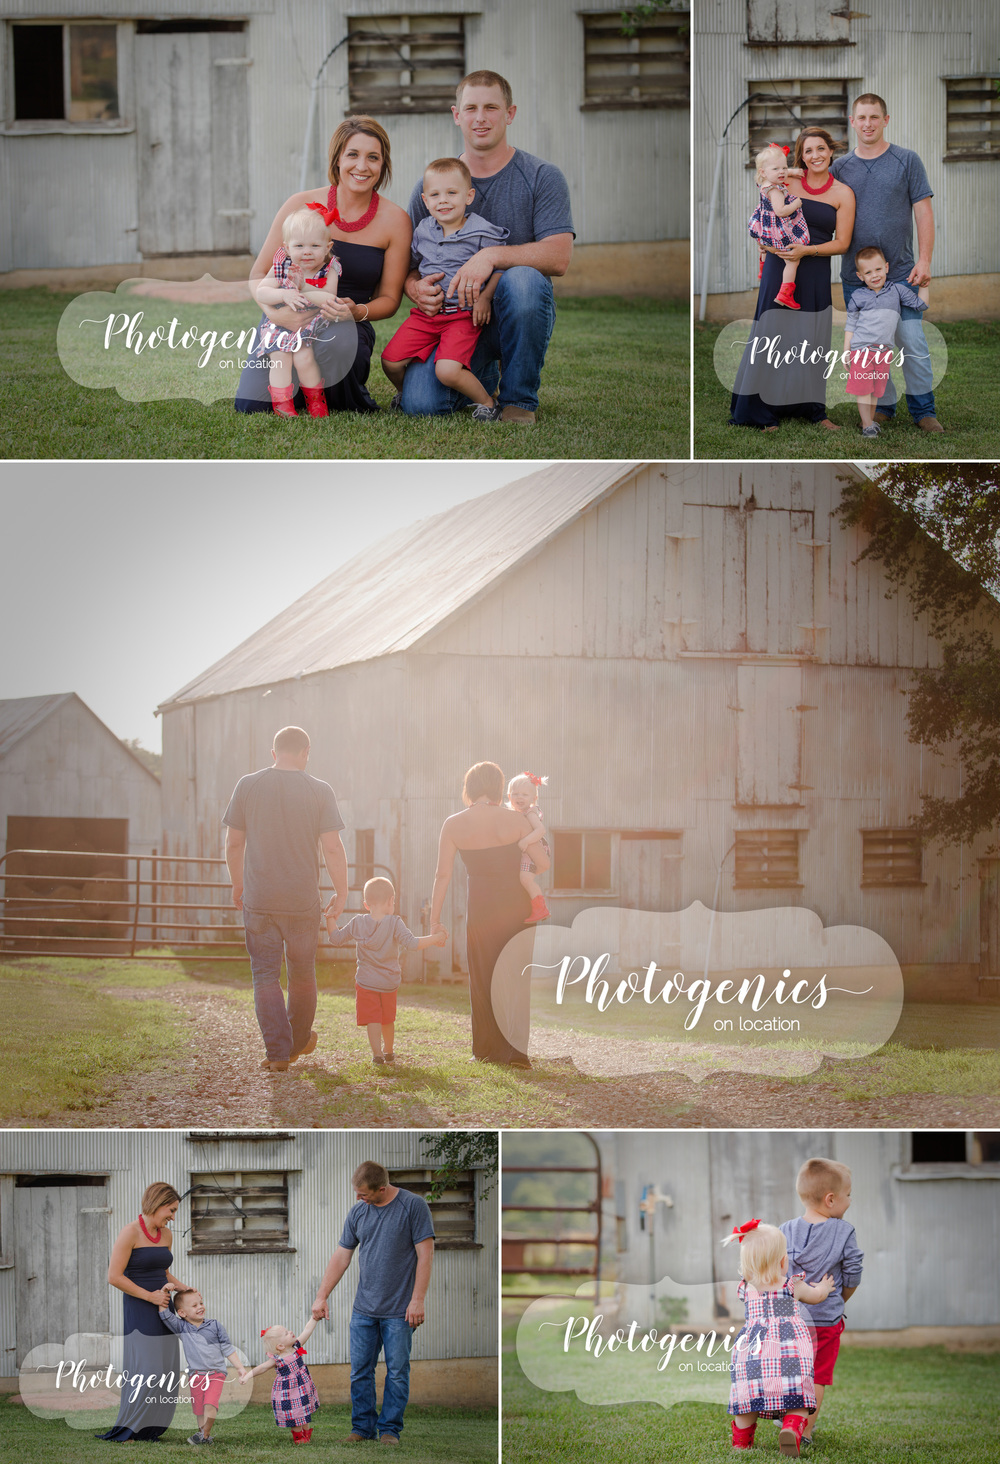 family_summer_photography_americana_red_white_blue_theme_what_to_wear_fourth_of_july_ideas 1.jpg